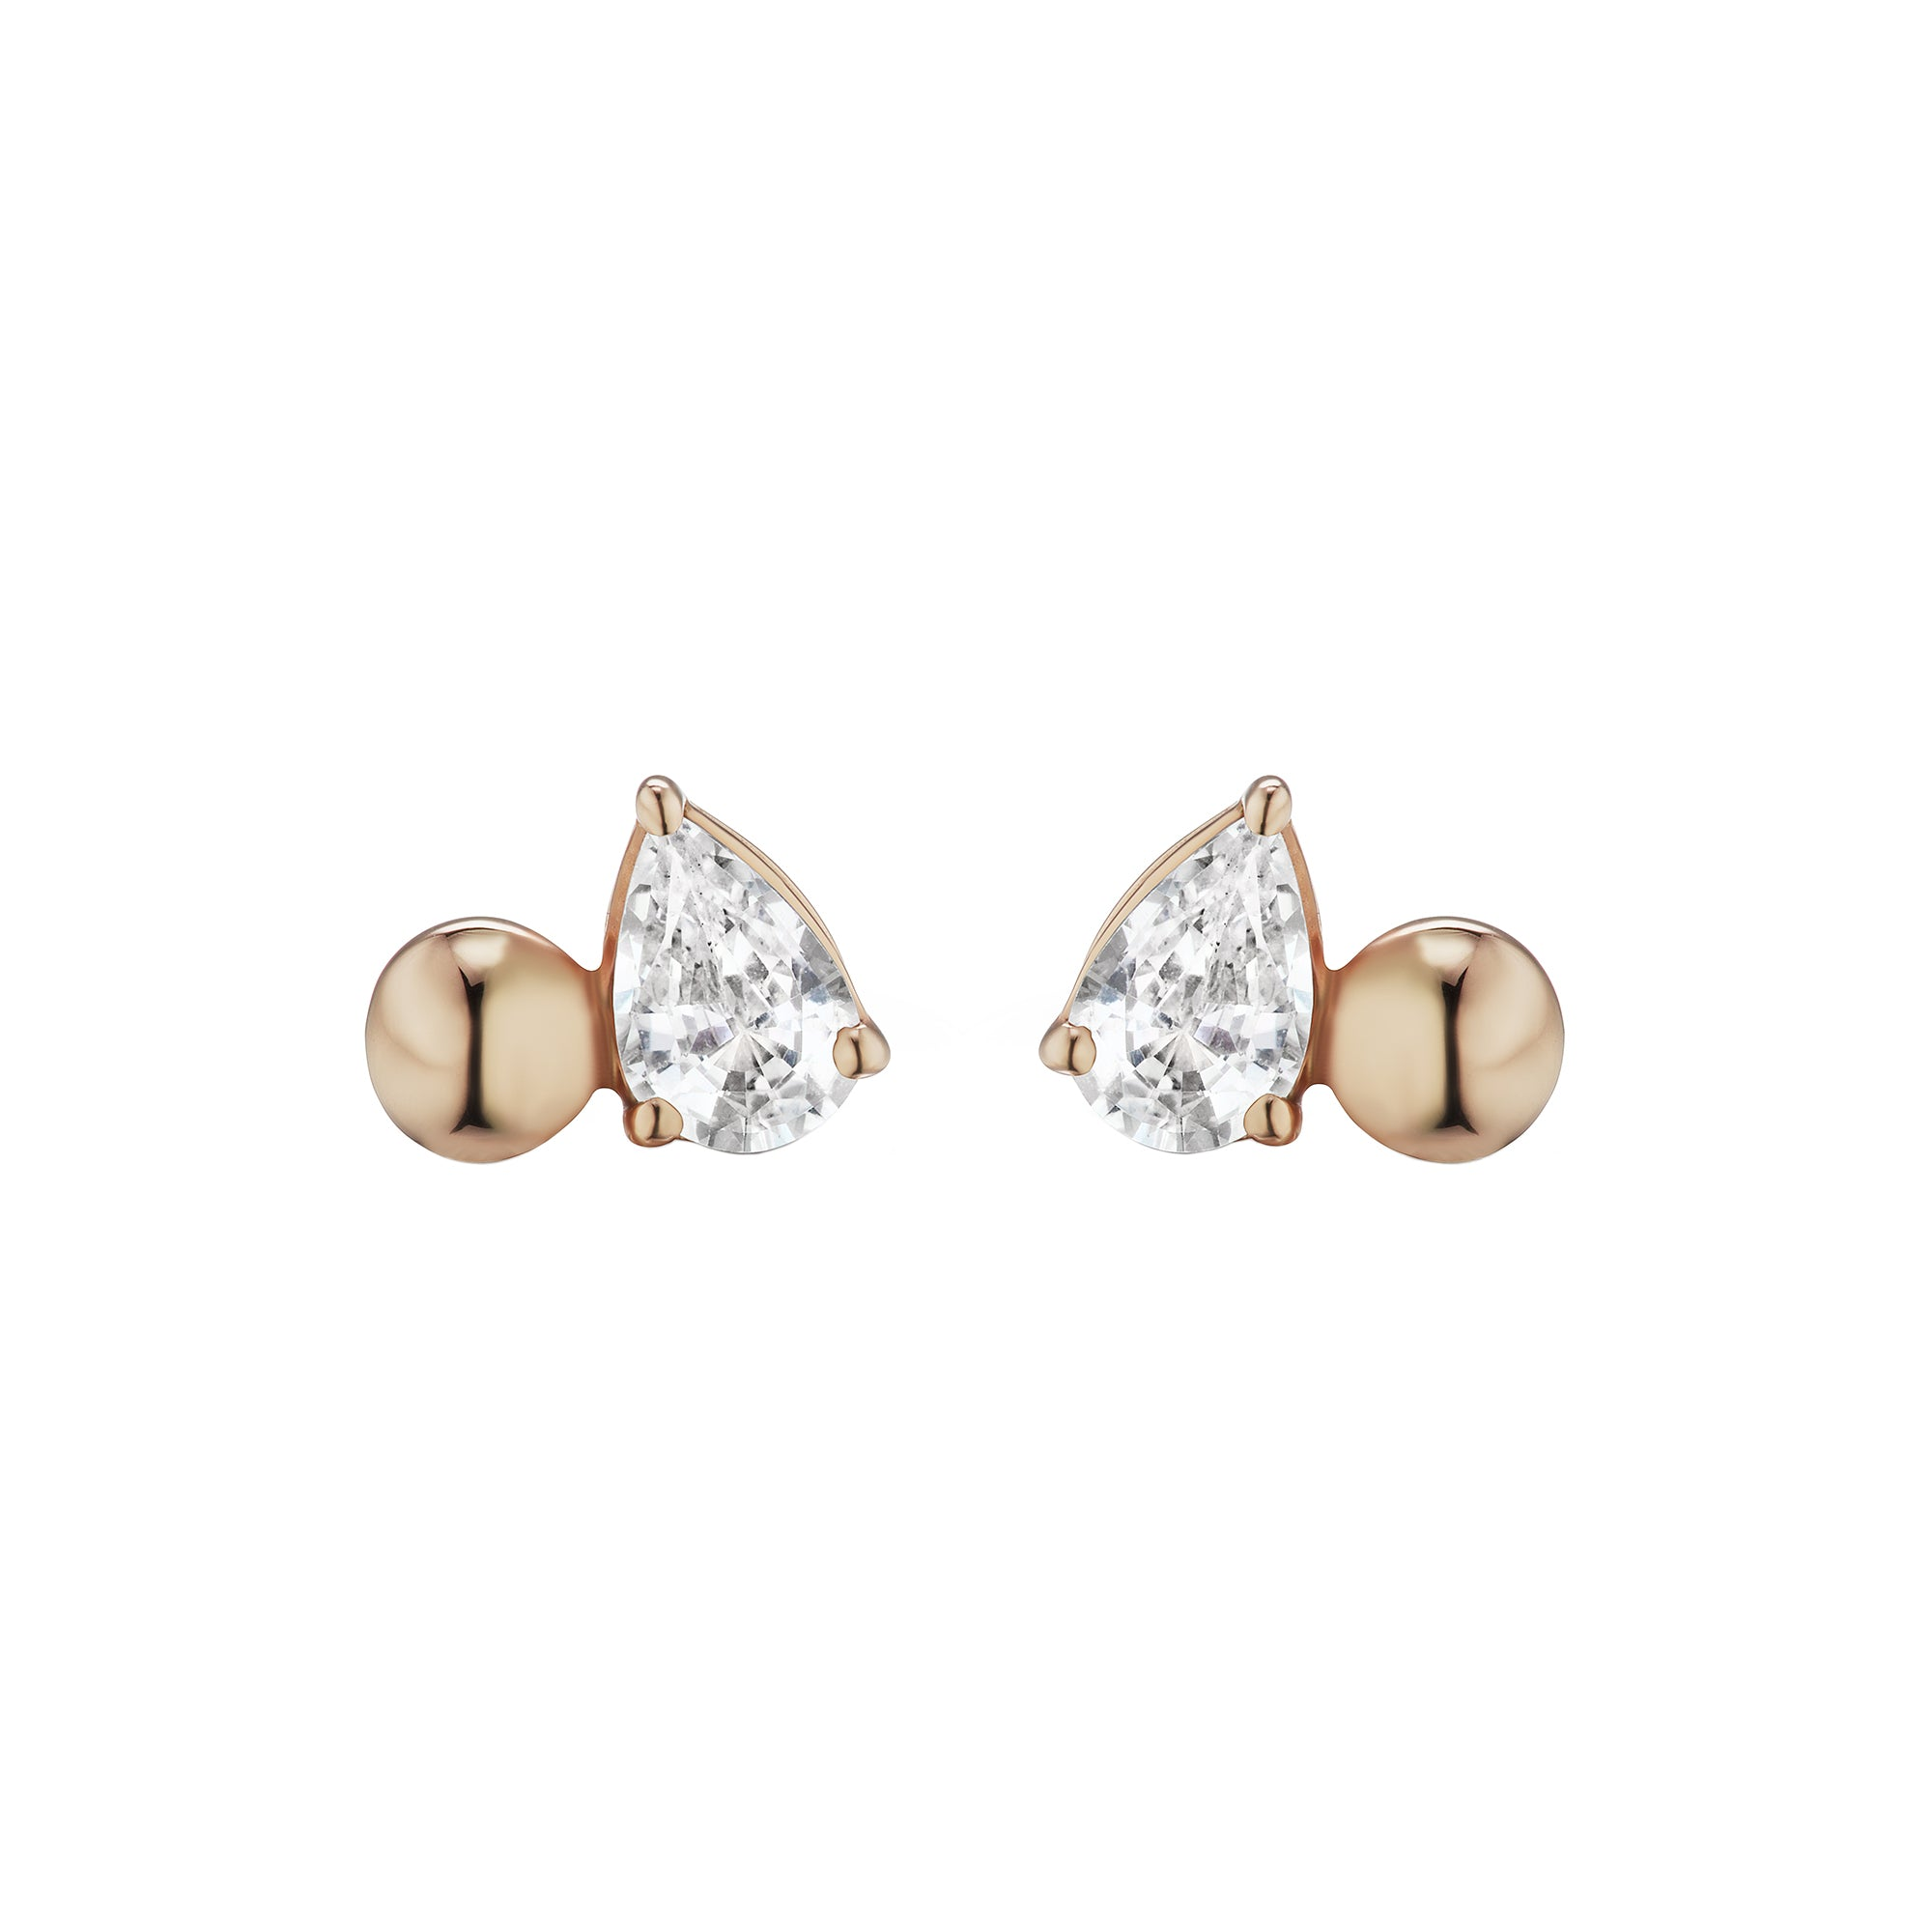 White Sapphire Pirum Sphera Studs by Altruist for Broken English Jewelry